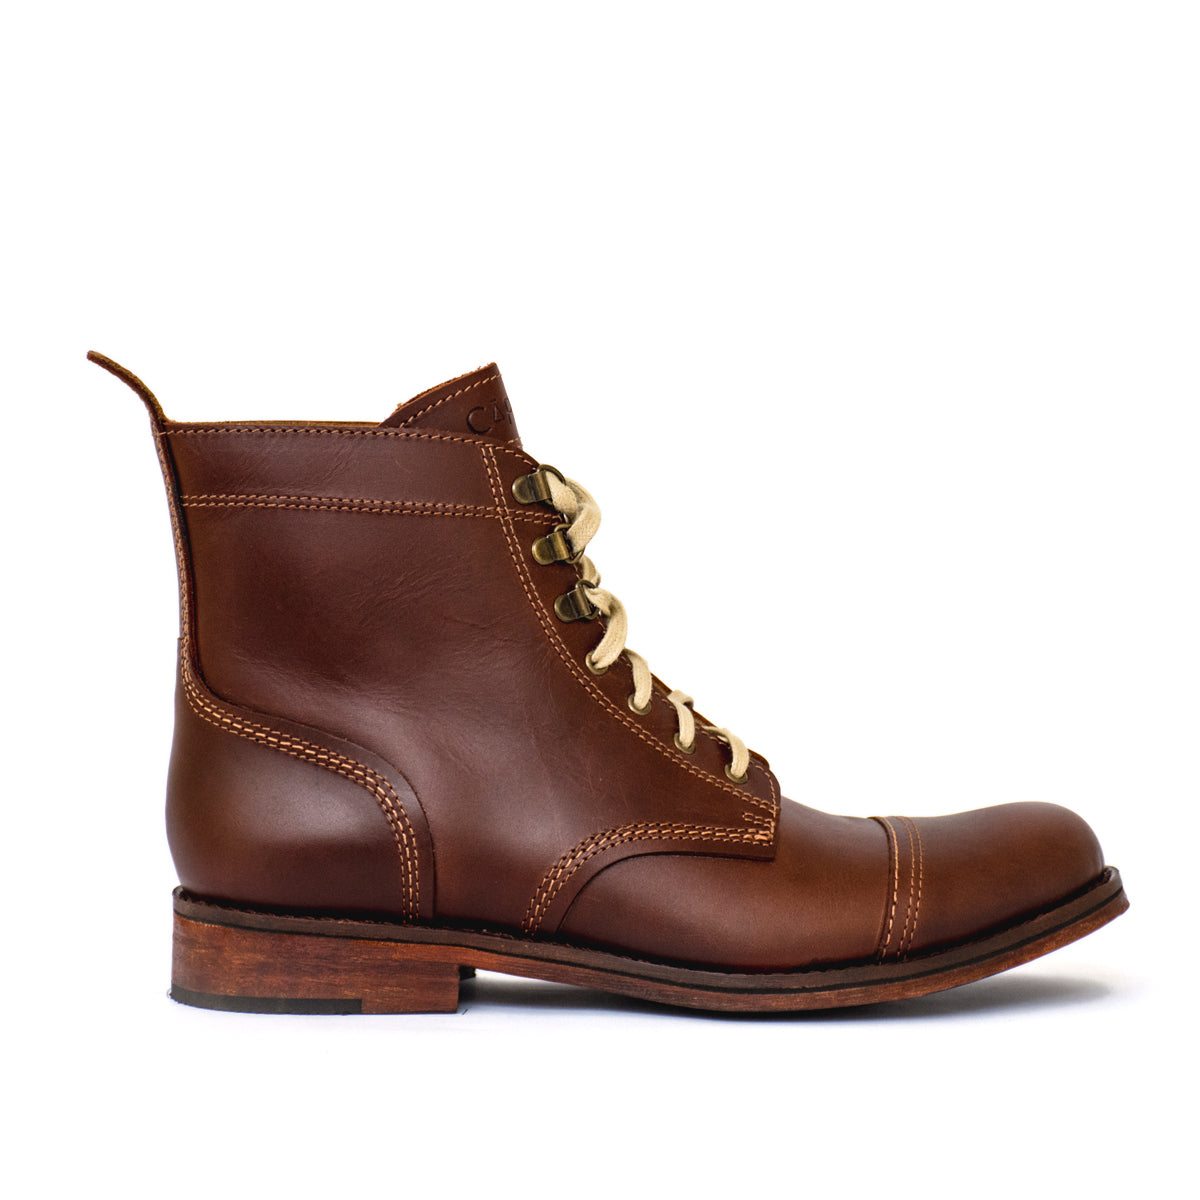 78159fc6055 Master Classics - leather boots - CAPITA boots and shoes